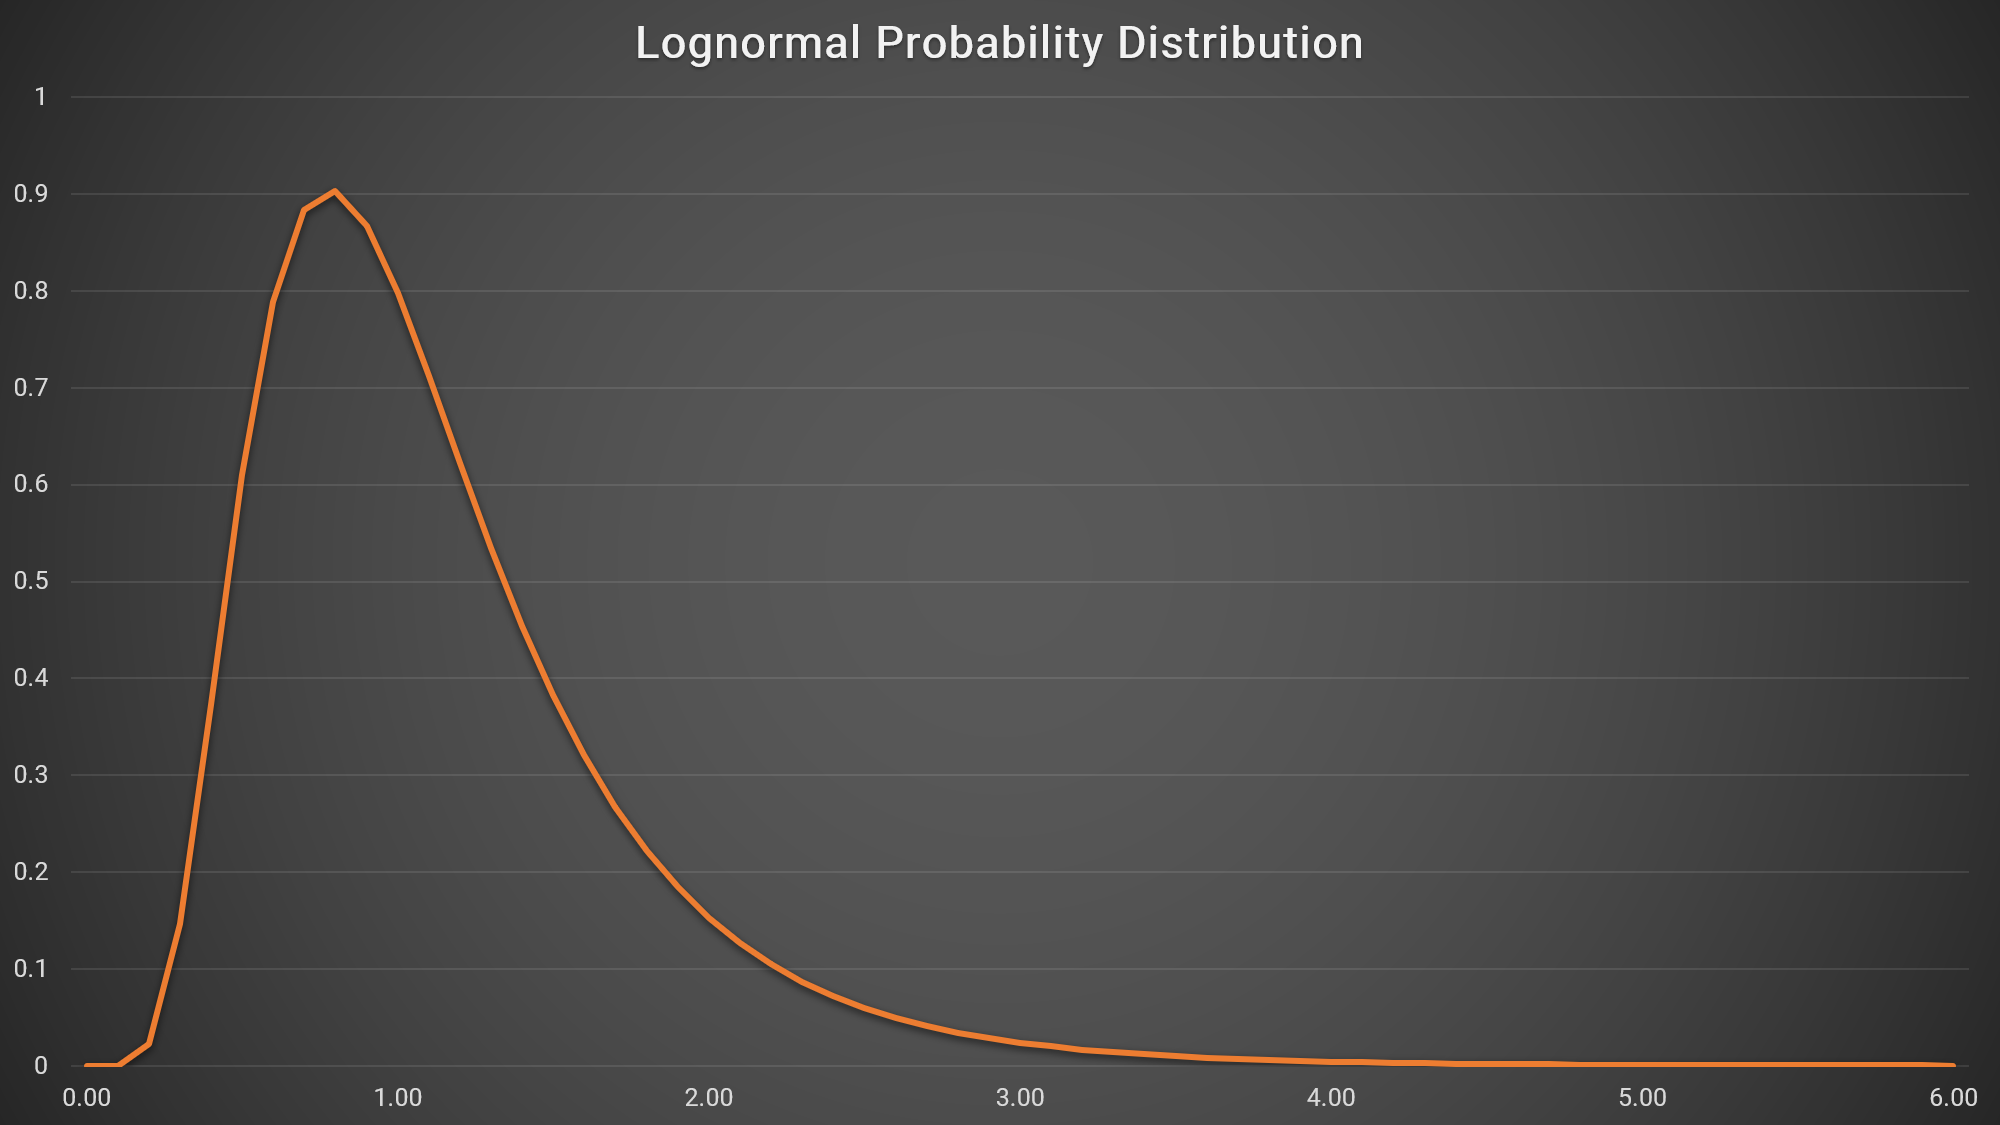 However, while the extent to which we should build fat tails and black swans into option pricing is open to debate, we have recently been presented with a problem that is beyond debate. If Black-Scholes and other techniques treat daily logarithmic returns as being normally distributed, then by implication they treat the price of the underlying asset as being lognormally distributed. And if a share or index is to be regarded as lognormally distributed, then its price cannot be negative.